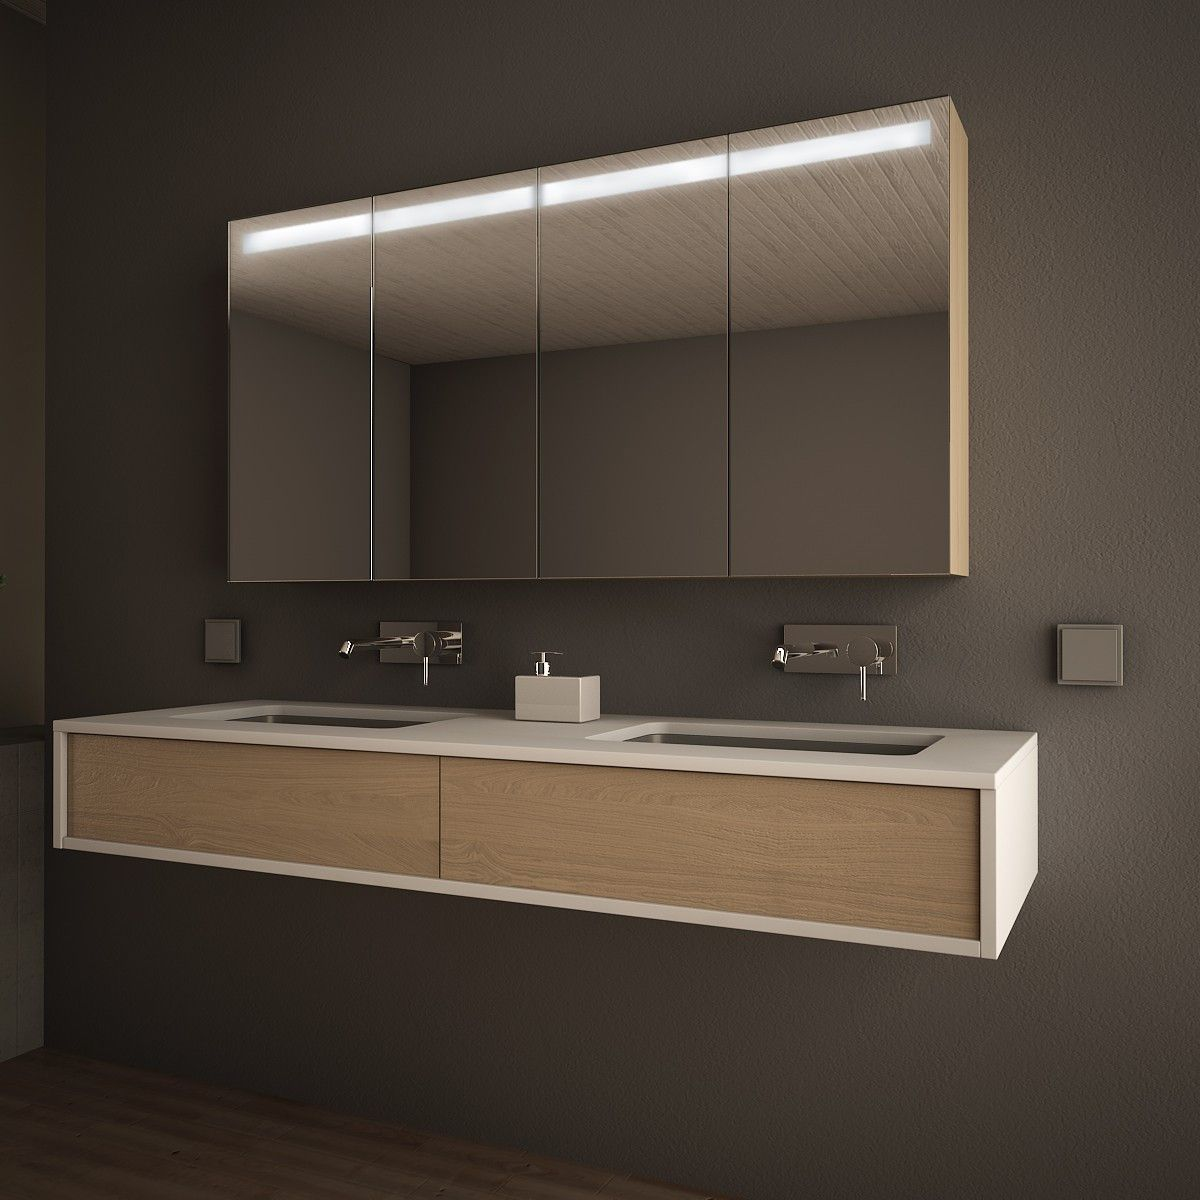 Spiegel Schrank Fur Badezimmer Des Images In 2020 Bathroom Mirror Bathroom Mirror Cabinet Mirror Cabinets